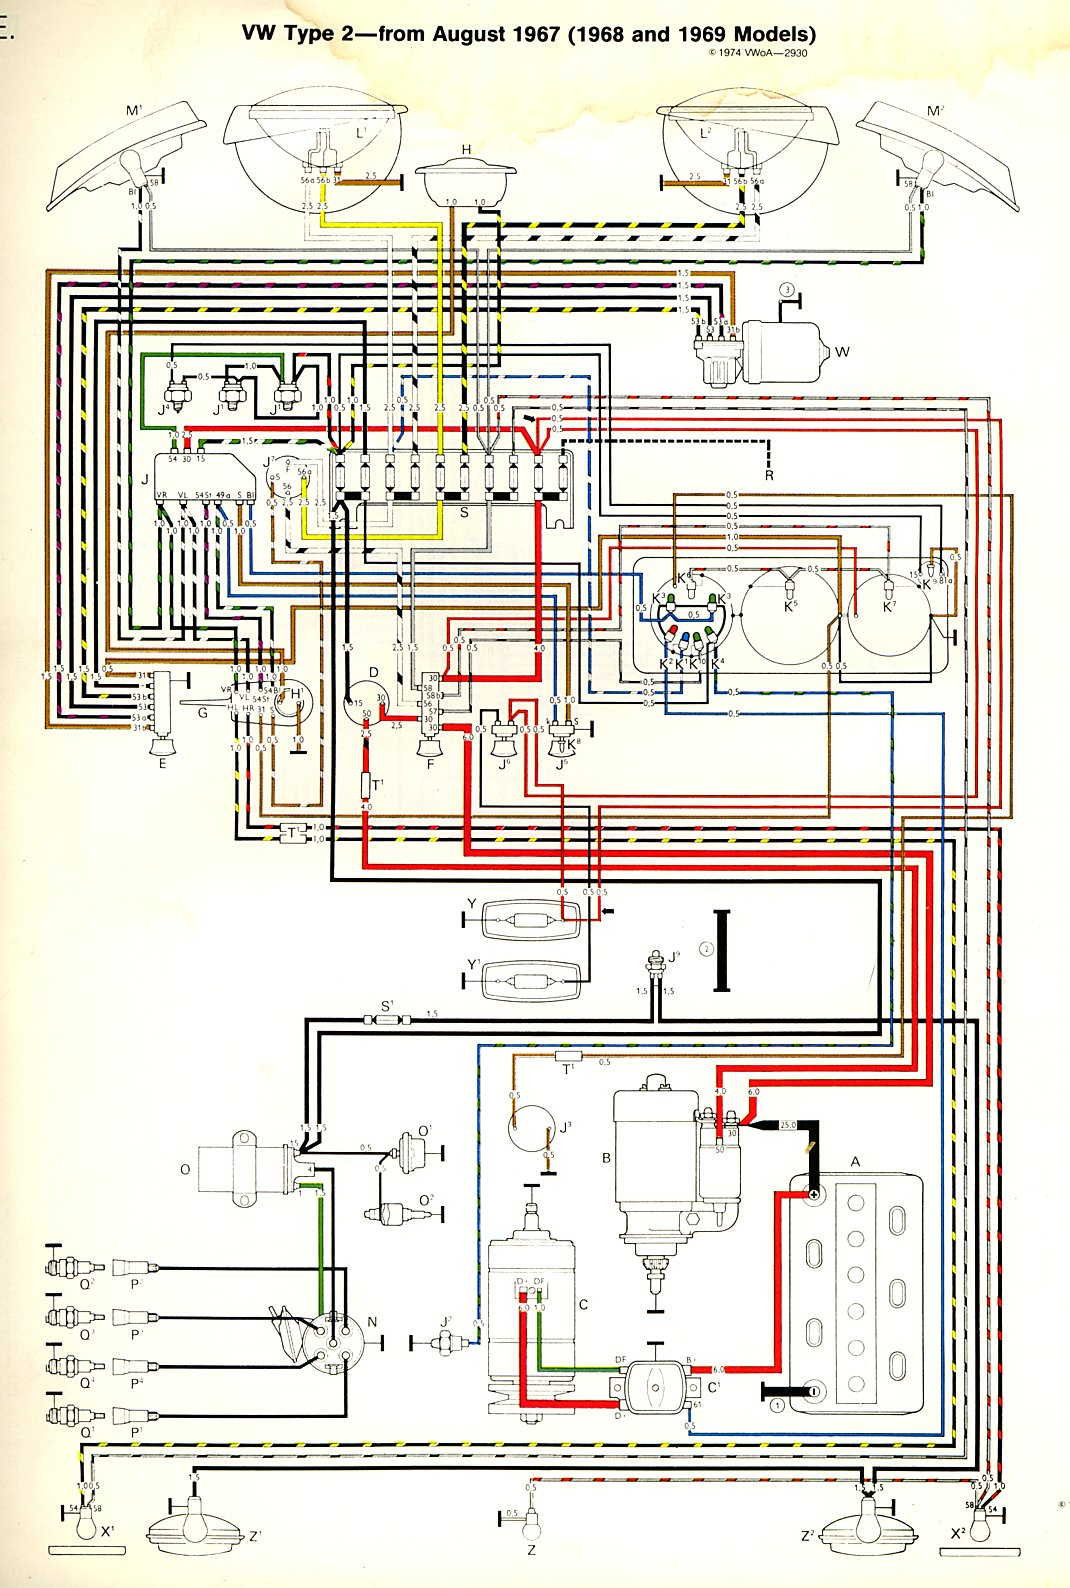 baybus_6869a 1968 69 bus wiring diagram thegoldenbug com vw golf 3 electrical wiring diagram at mifinder.co